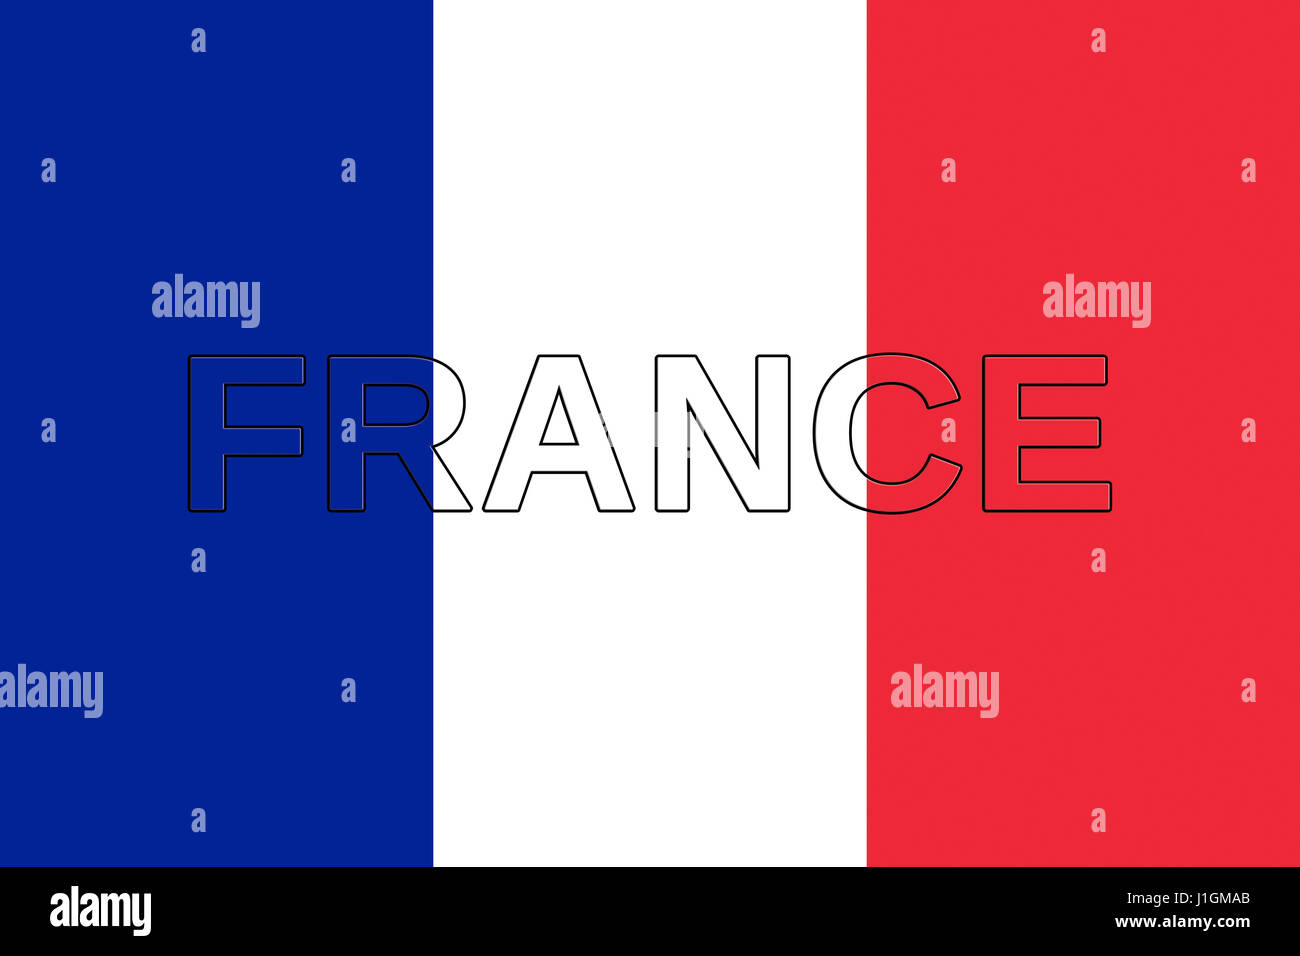 Illustration of the national flag of  France with the word France on the flag - Stock Image